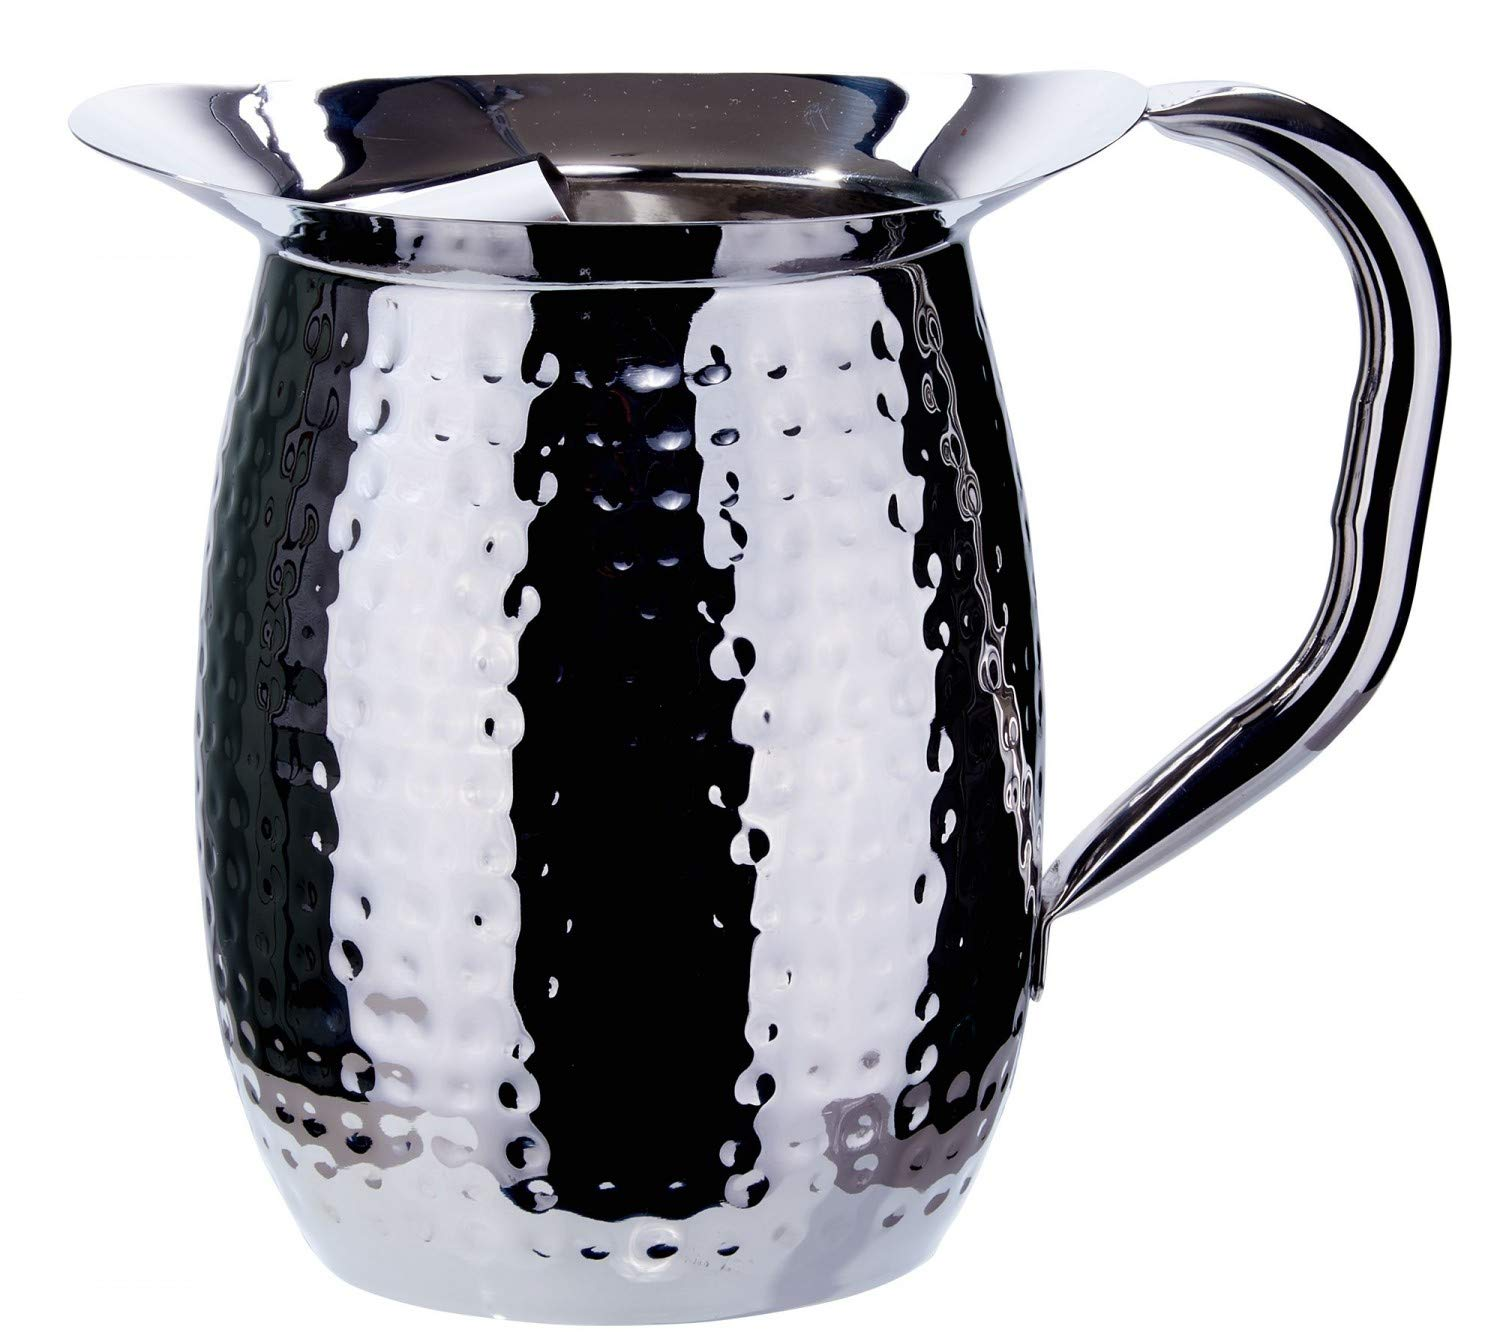 Winco WPB-3CH, 3-Quart Stainless Steel Bell Pitcher with Ice Guard,Sophisticated Carafe, Hammered (6 PACK)